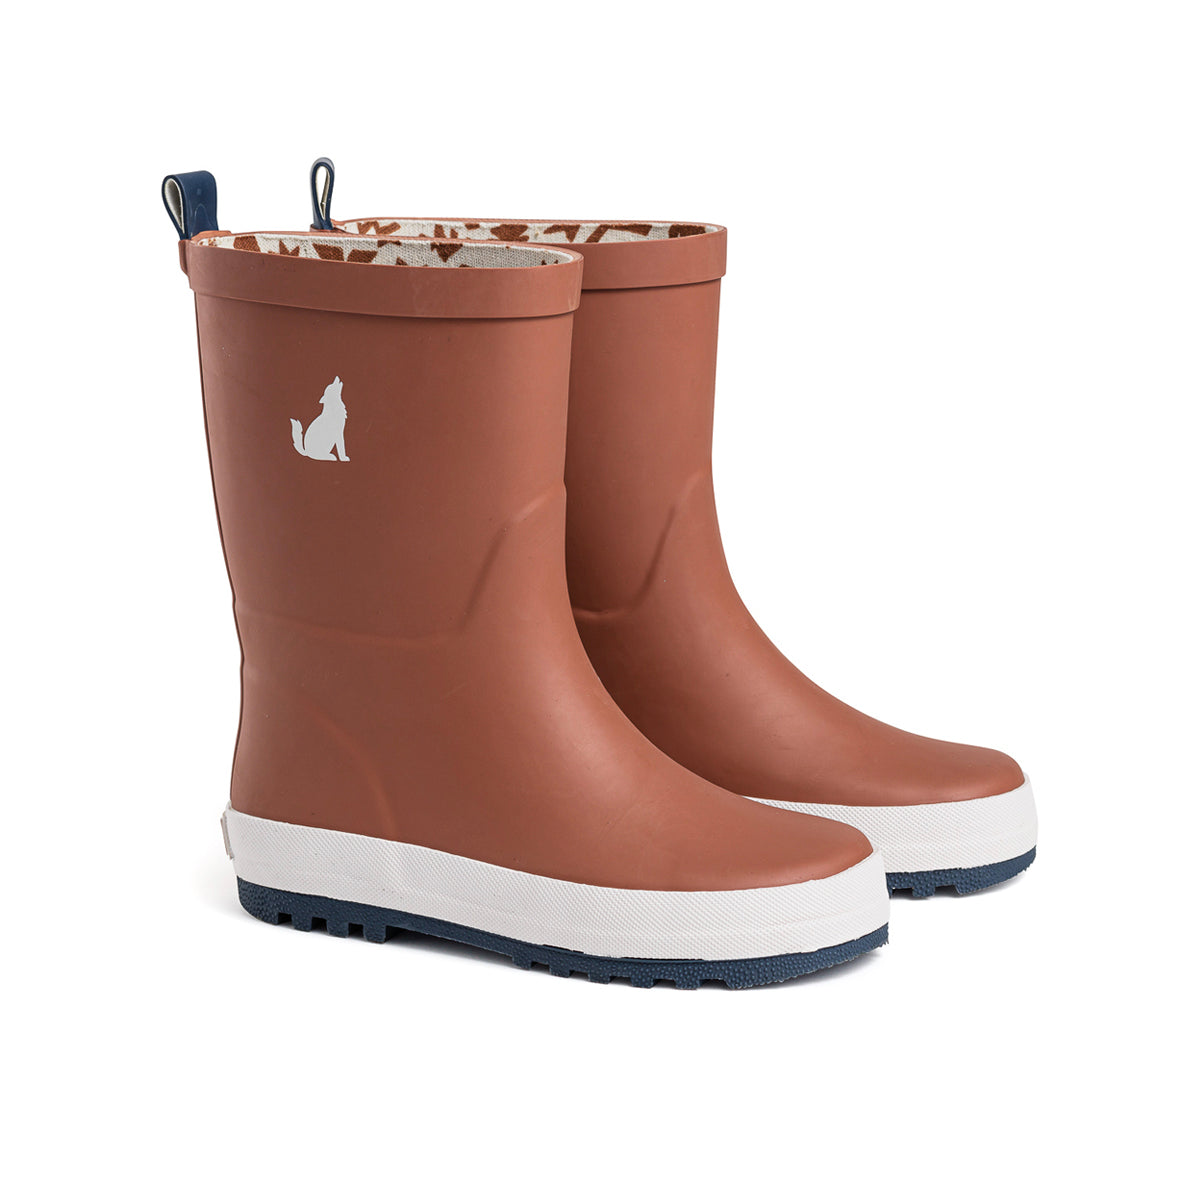 Kids Gumboot Rust